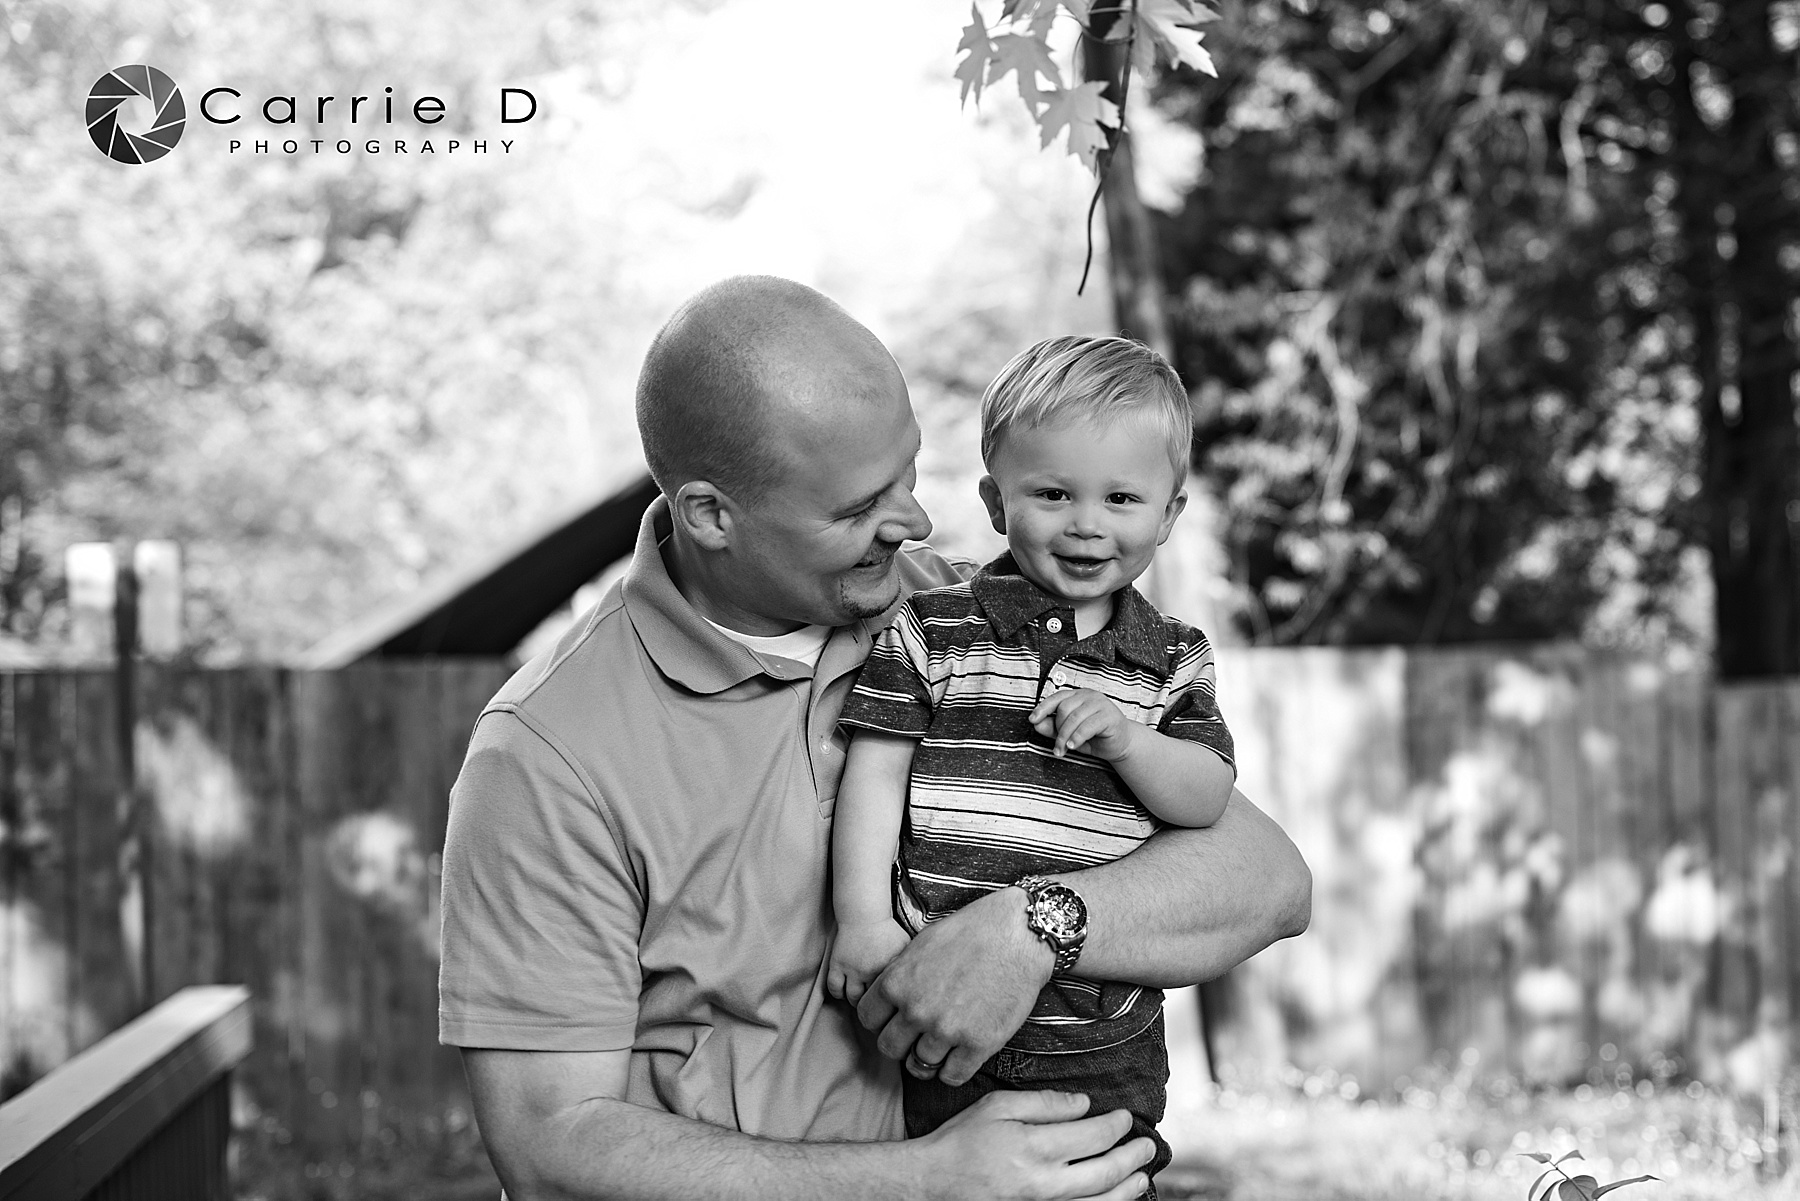 Baltimore Photographer – Baltimore Portrait Photographer – Baltimore Family Photographer – Baltimore Child Photographer – Baltimore Sibling Photographer – Baltimore Natural Light Photographer – Baltimore Lifestyle Photographer – Baltimore Natural Light Portrait Photographer - Maryland Photographer – Maryland Portrait Photographer – Maryland Family Photographer – Maryland Child Photographer – Maryland Sibling Photographer – Maryland Natural Light Photographer – Maryland Lifestyle Photographer – Maryland Natural Light Portrait Photographer – Maryland Birthday Photographer – Maryland Milestone Photographer – Baltimore Birthday Photographer – Baltimore Milestone Photographer -2014-06-09_0025